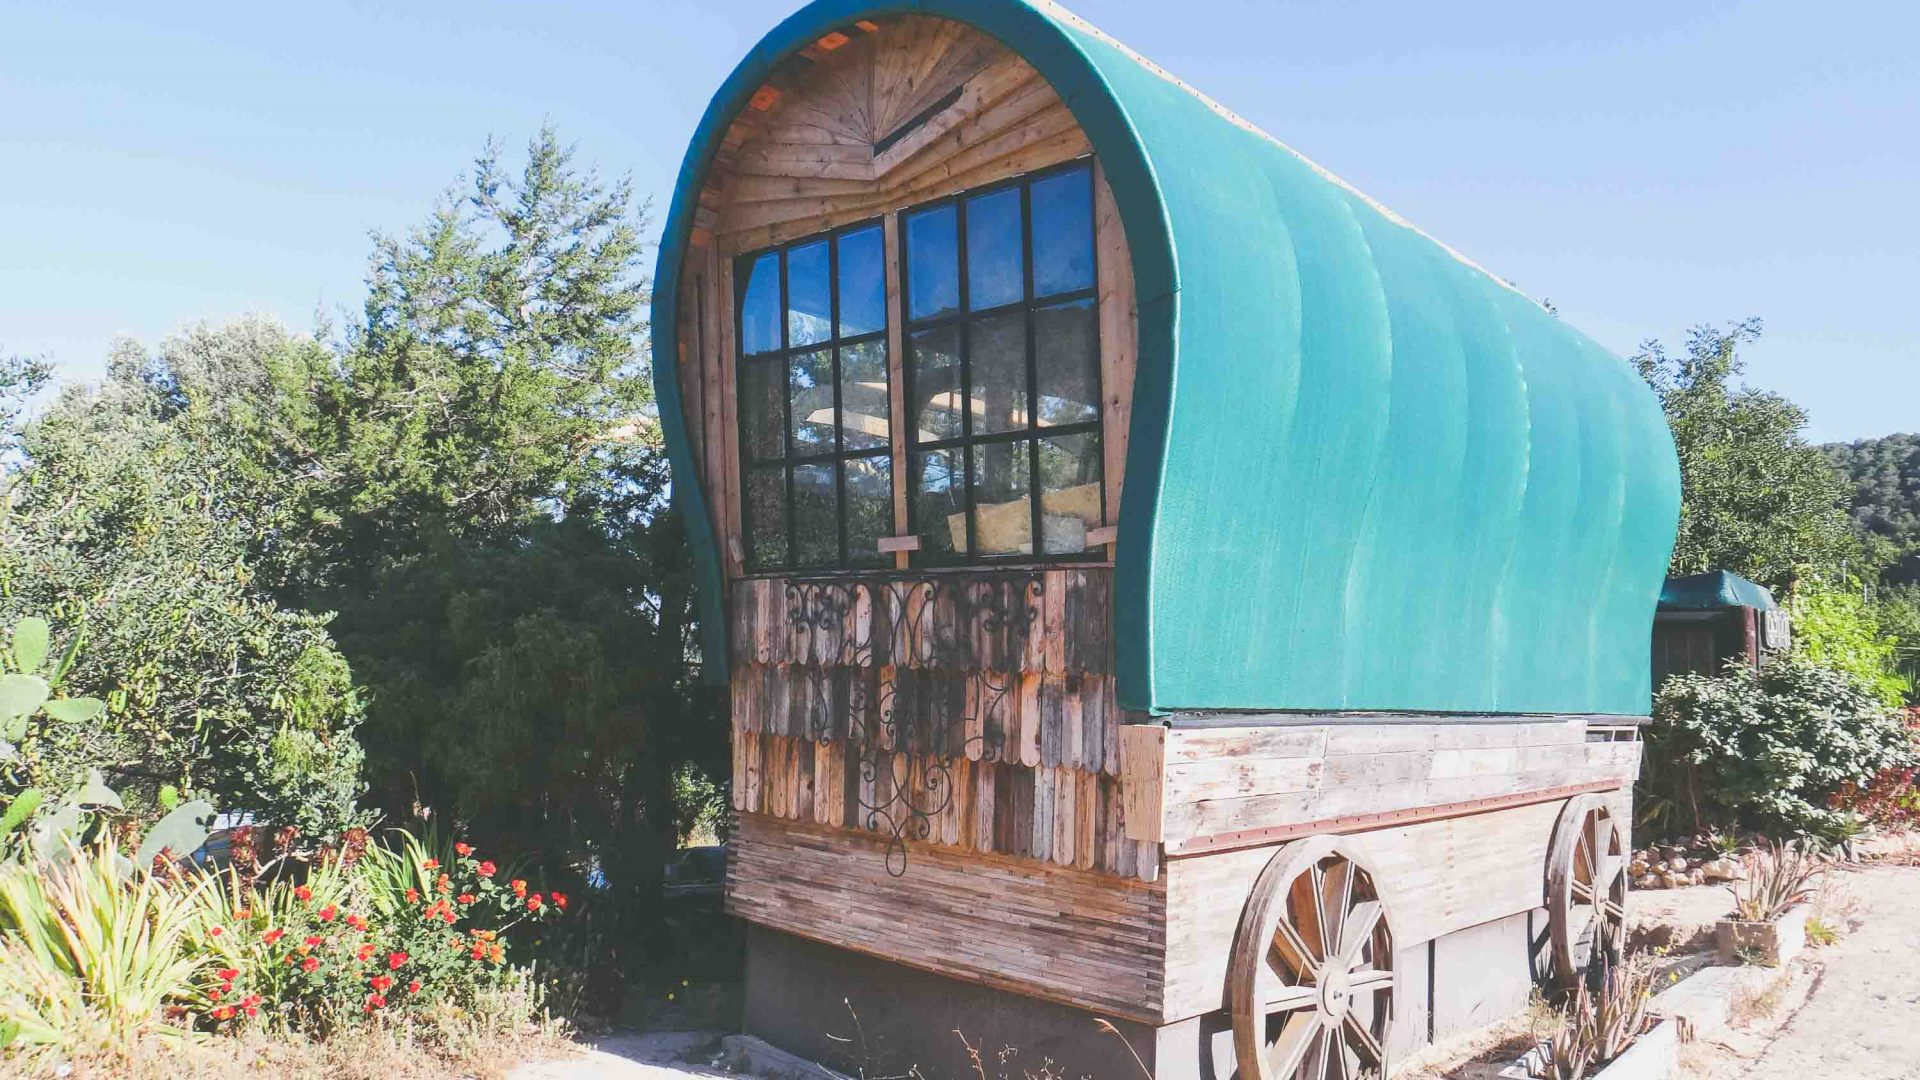 The Wagon house at Casita Verde.